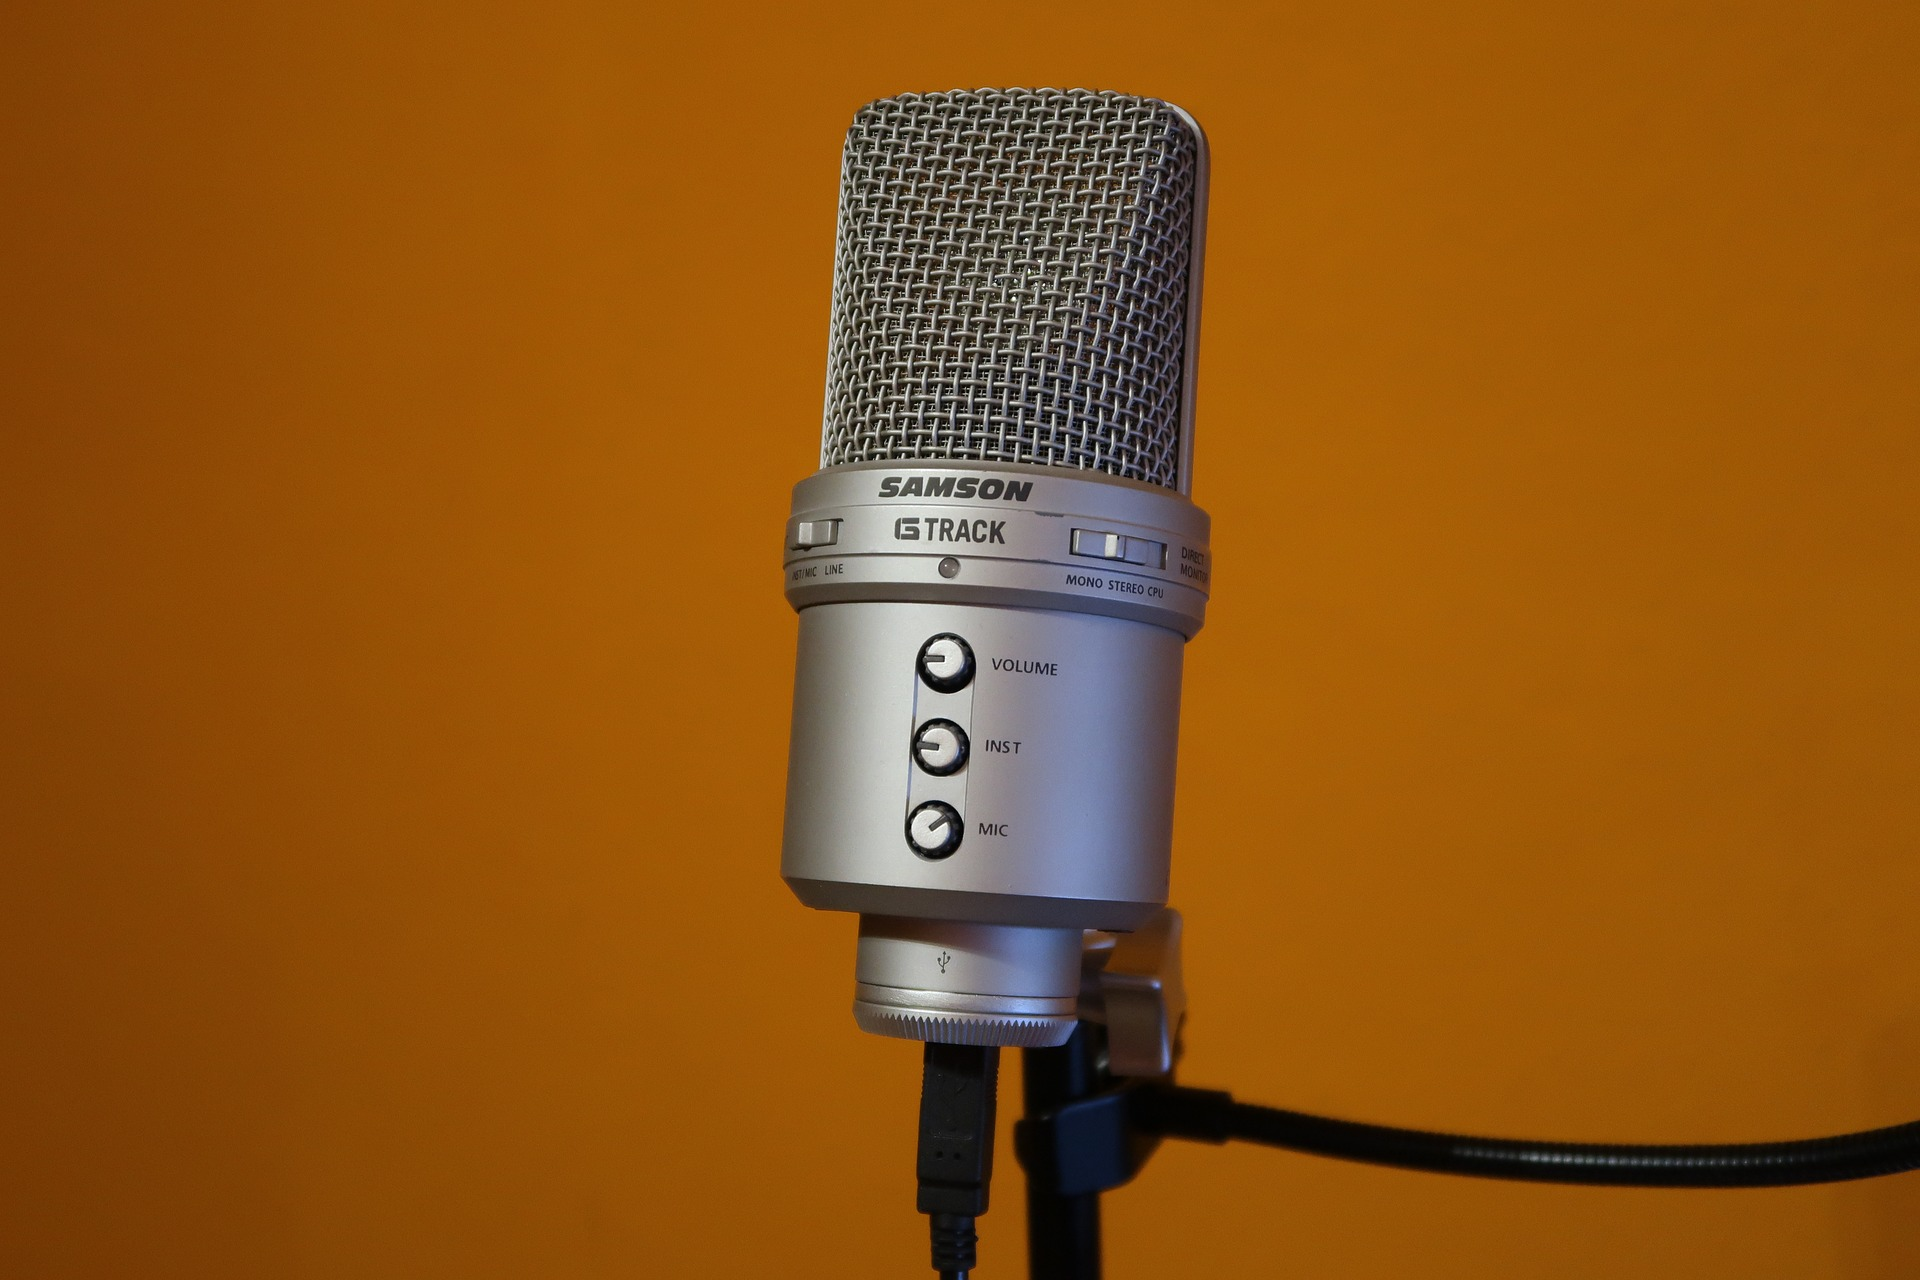 What's next for podcasting? | TechCrunch